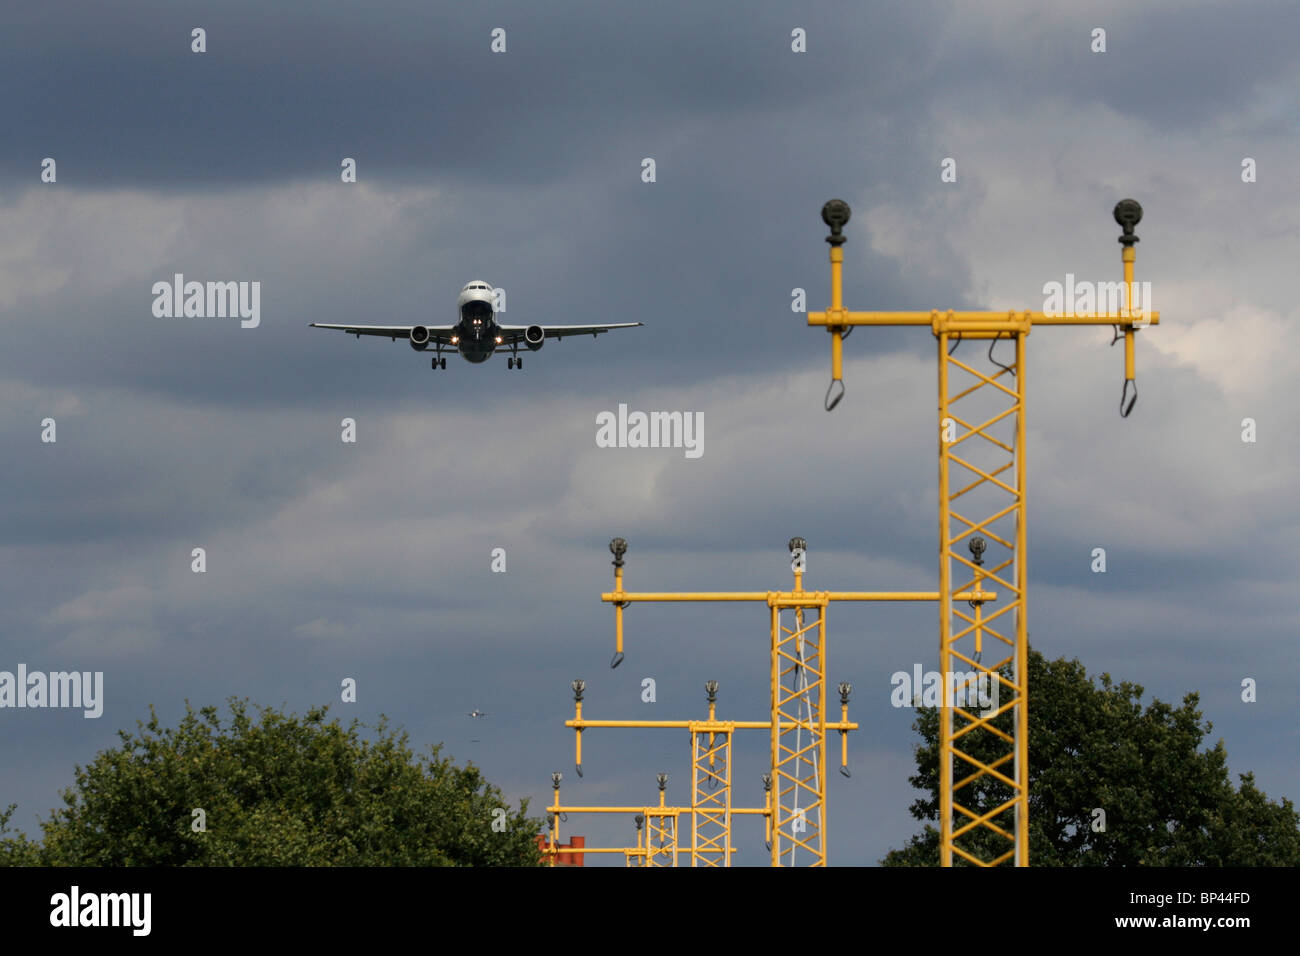 Aircraft on flight path to Heathrow Airport, London, with two more planes in the approach queue visible in the distance. - Stock Image